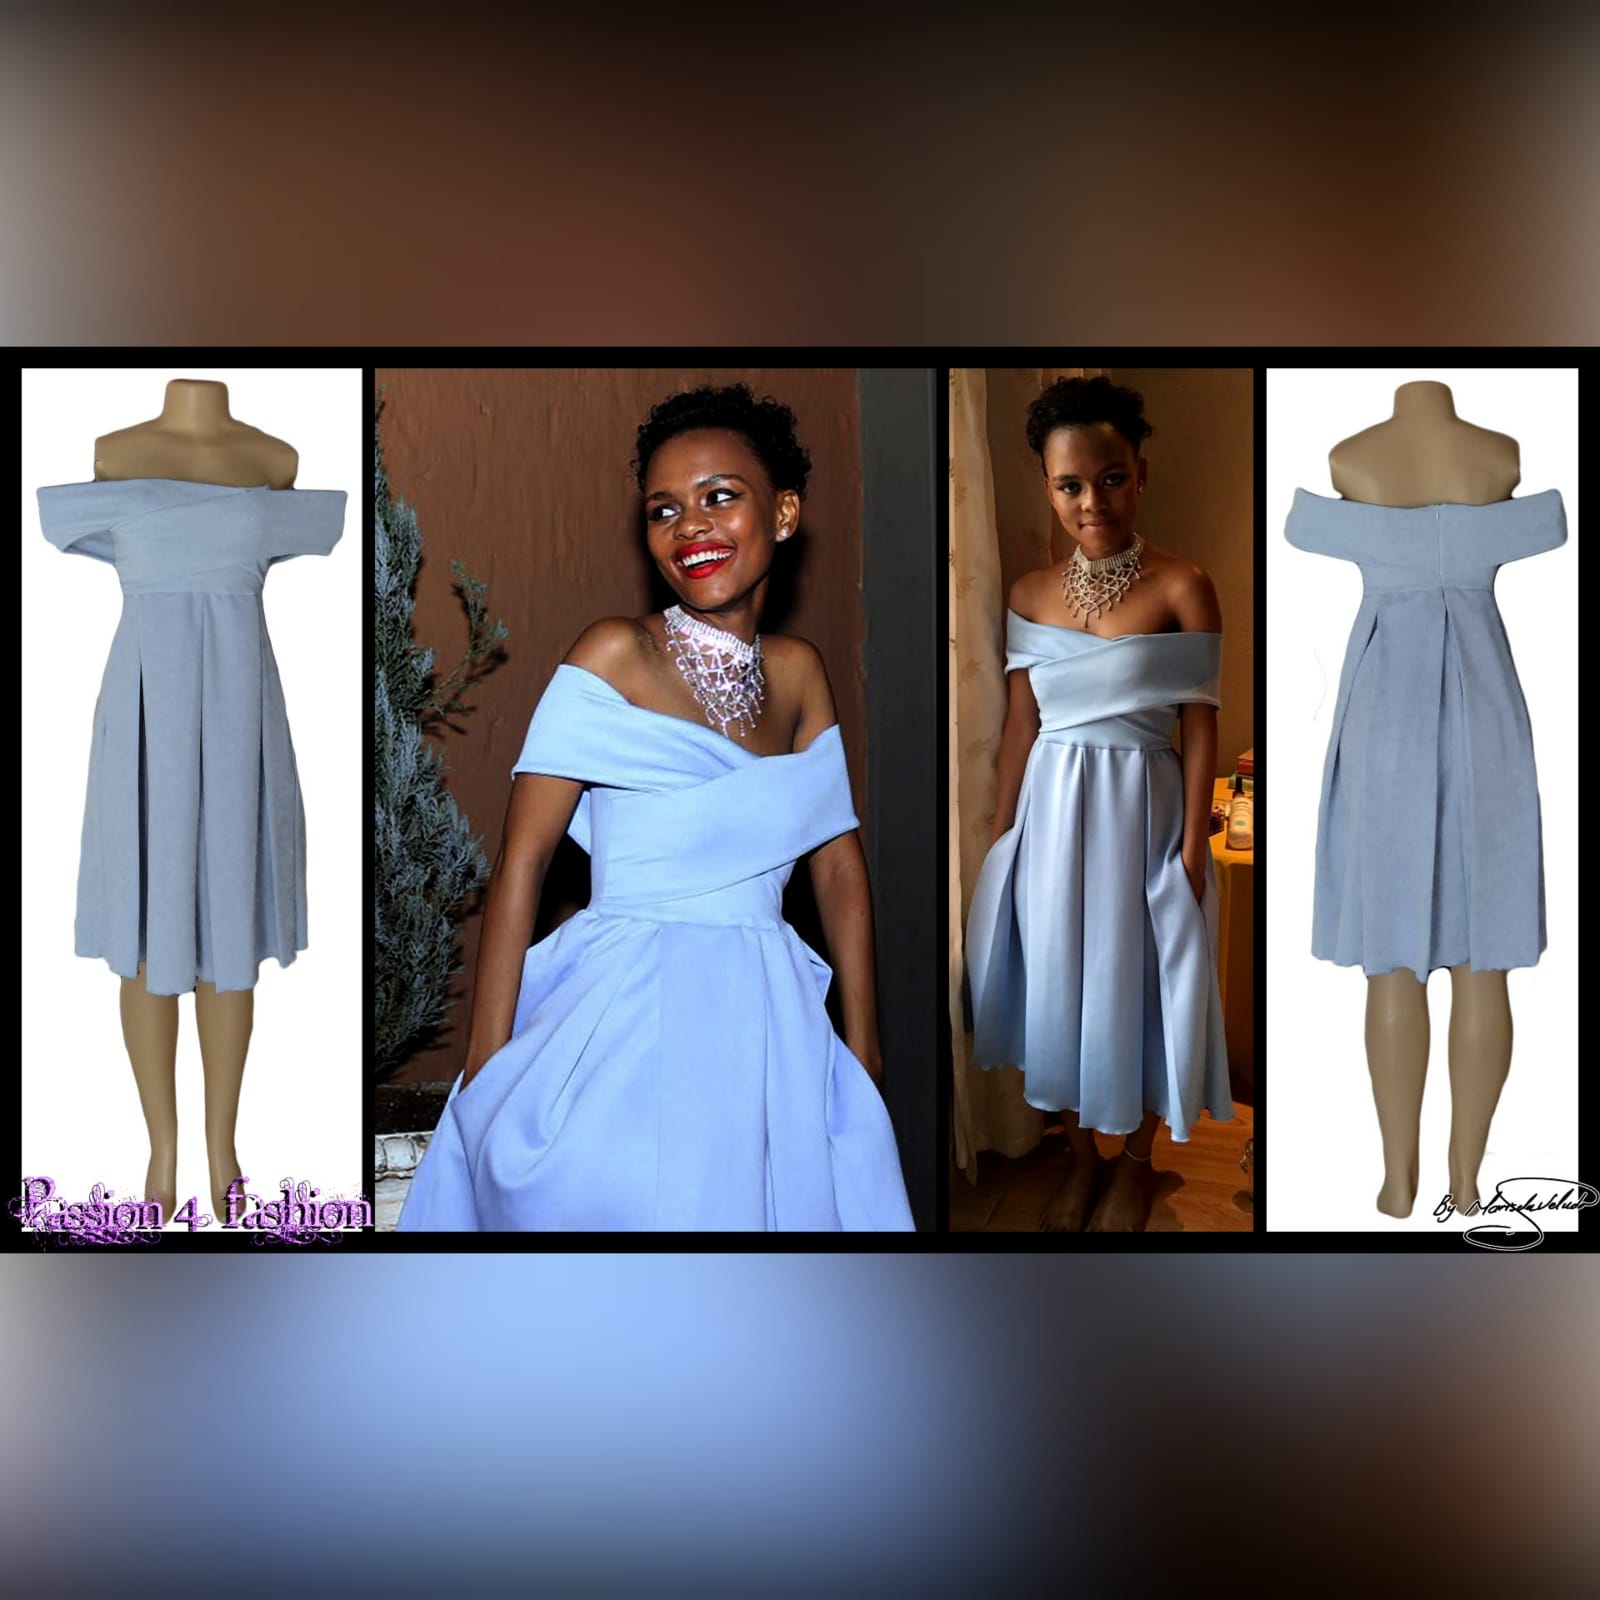 Short pale blue pleated cocktail dress 3 short pale blue pleated cocktail dress with a crossed bust design creating off shoulder short sleeves, pleated bottom with pockets.